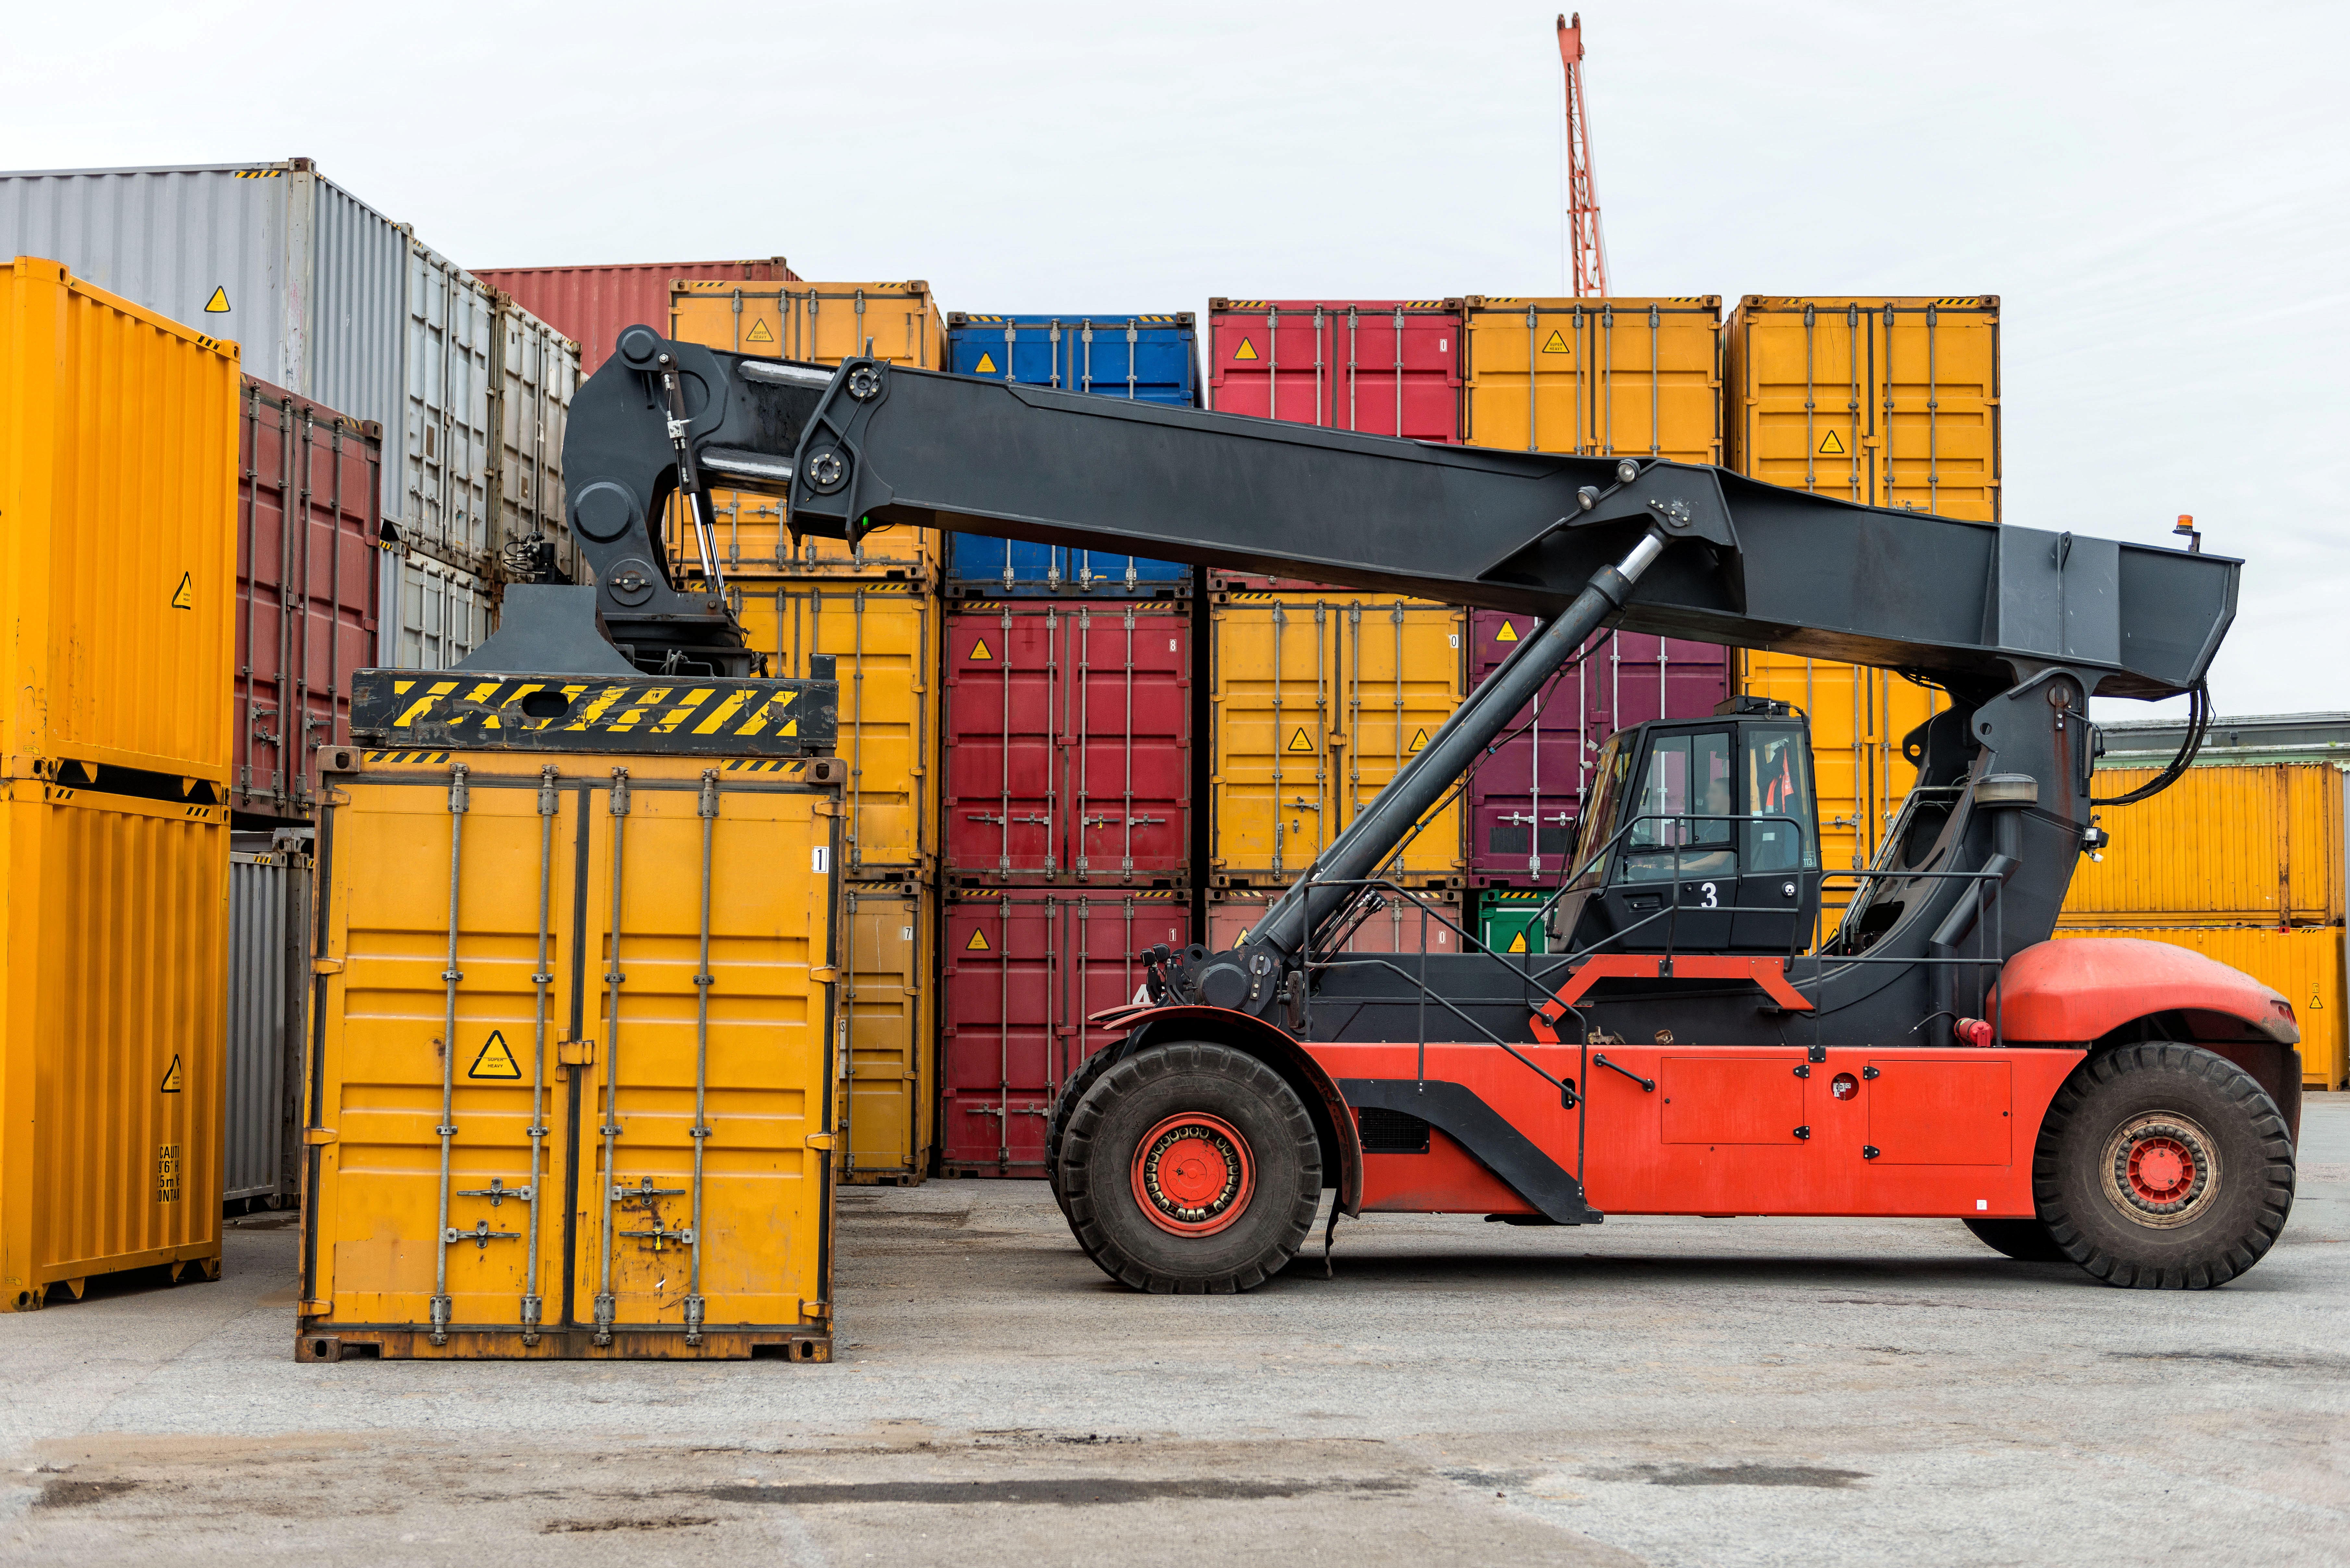 mobile-stacker-handler-in-action-at-a-container-te-AC9MF4F